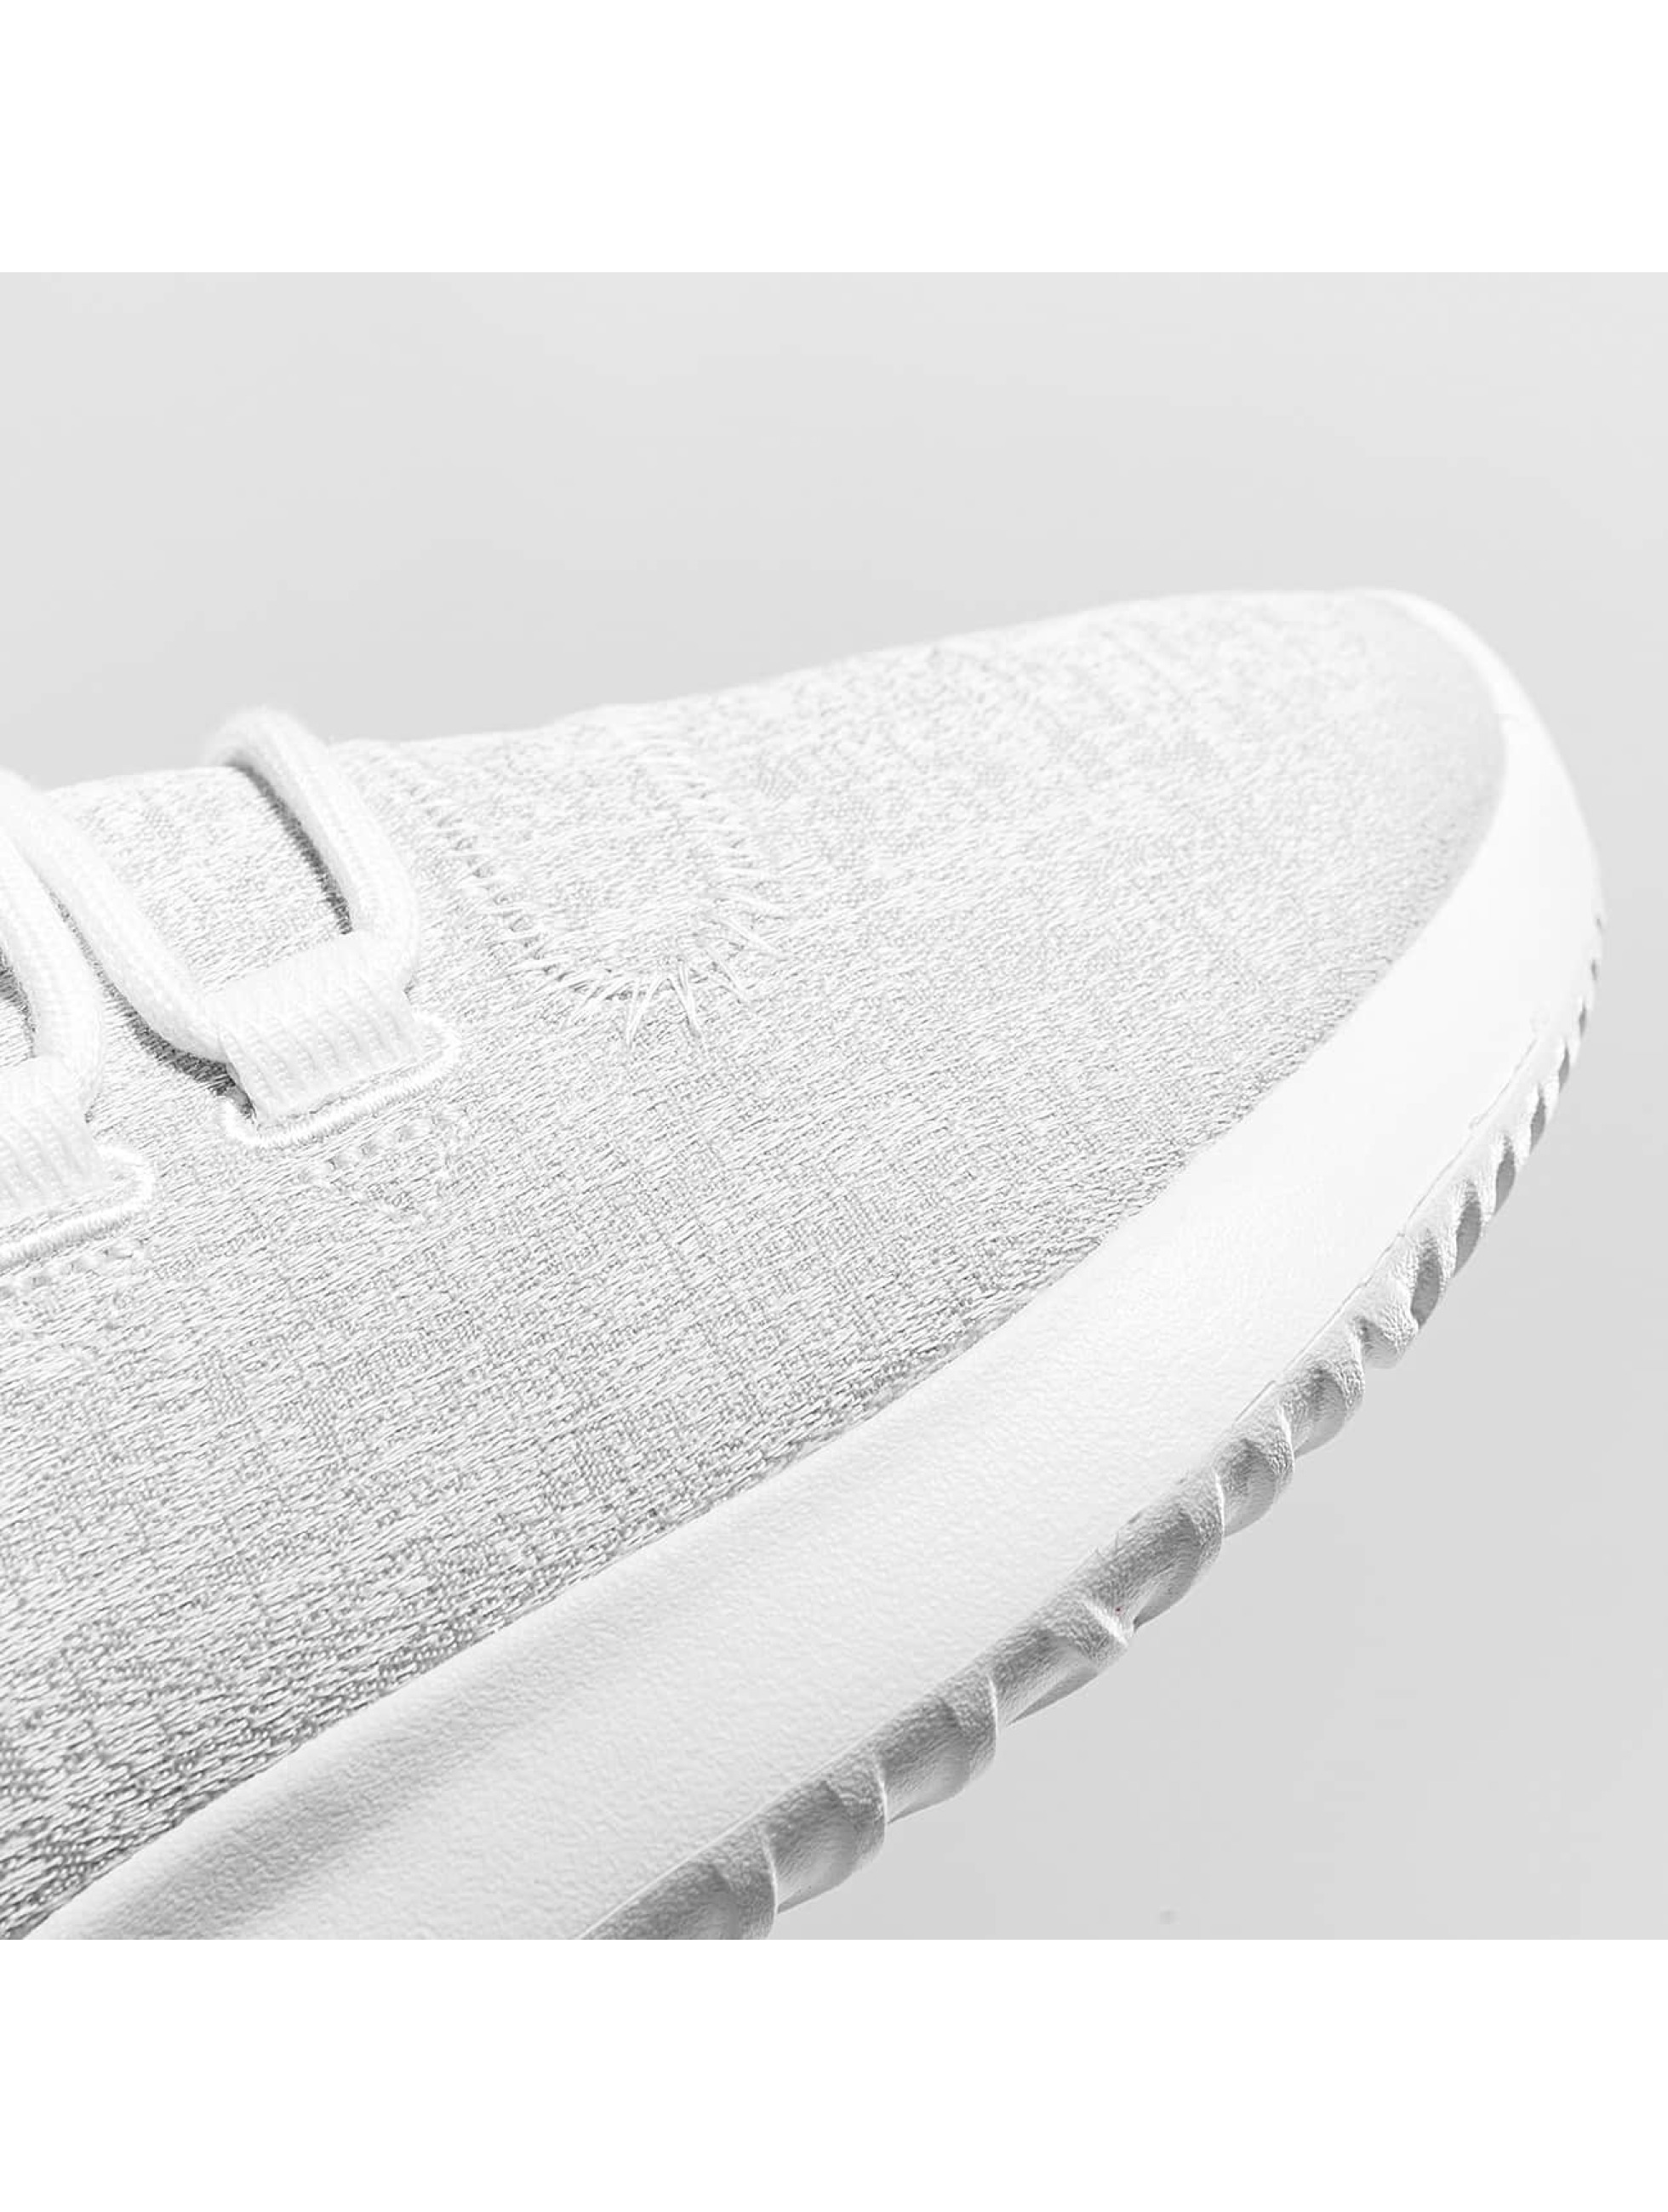 adidas originals Sneakers Tubular Shadow W white